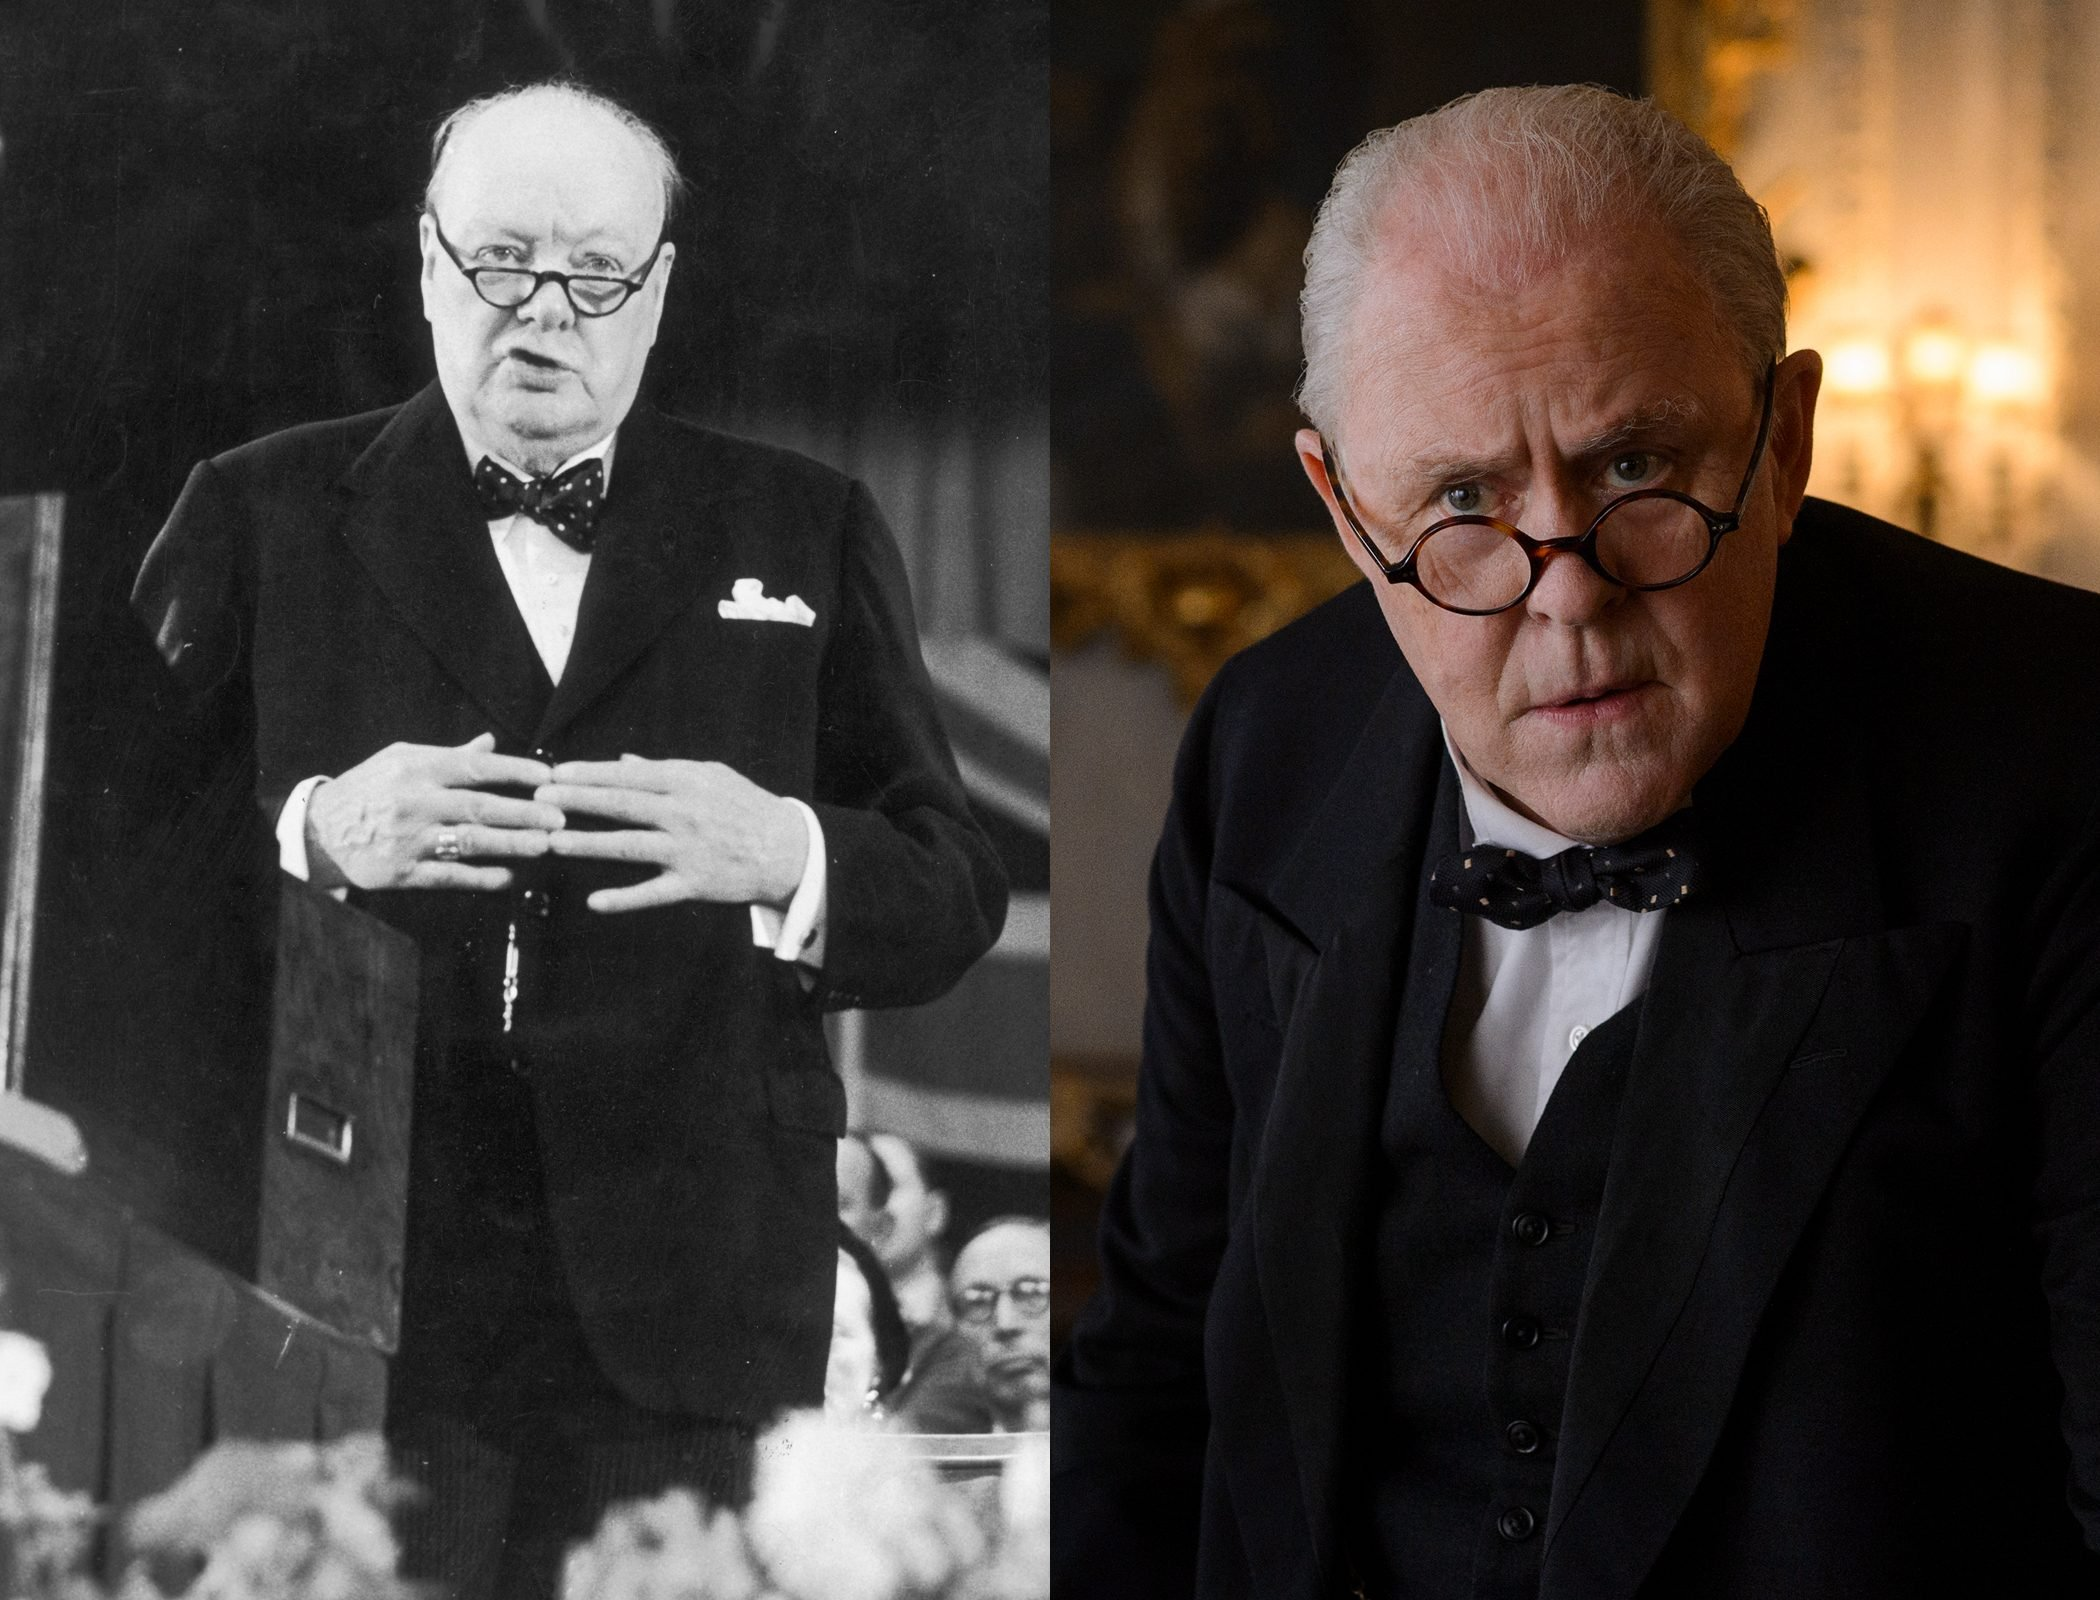 Sir Winston Churchill, as played by John Lithgow